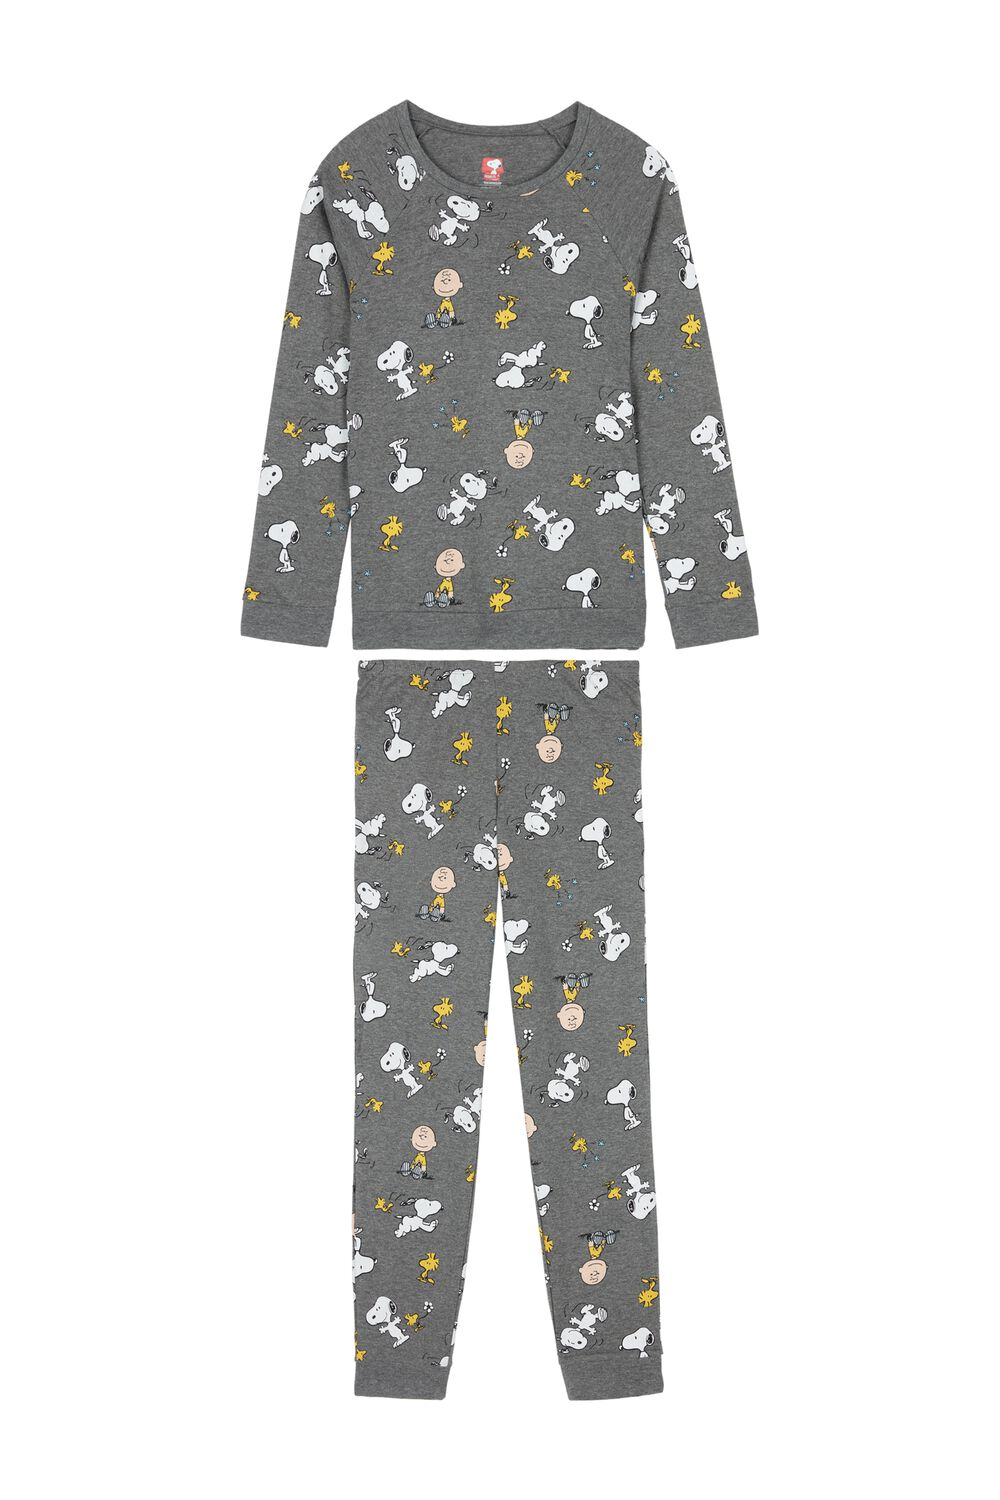 Long Peanuts© and Friends Pajamas